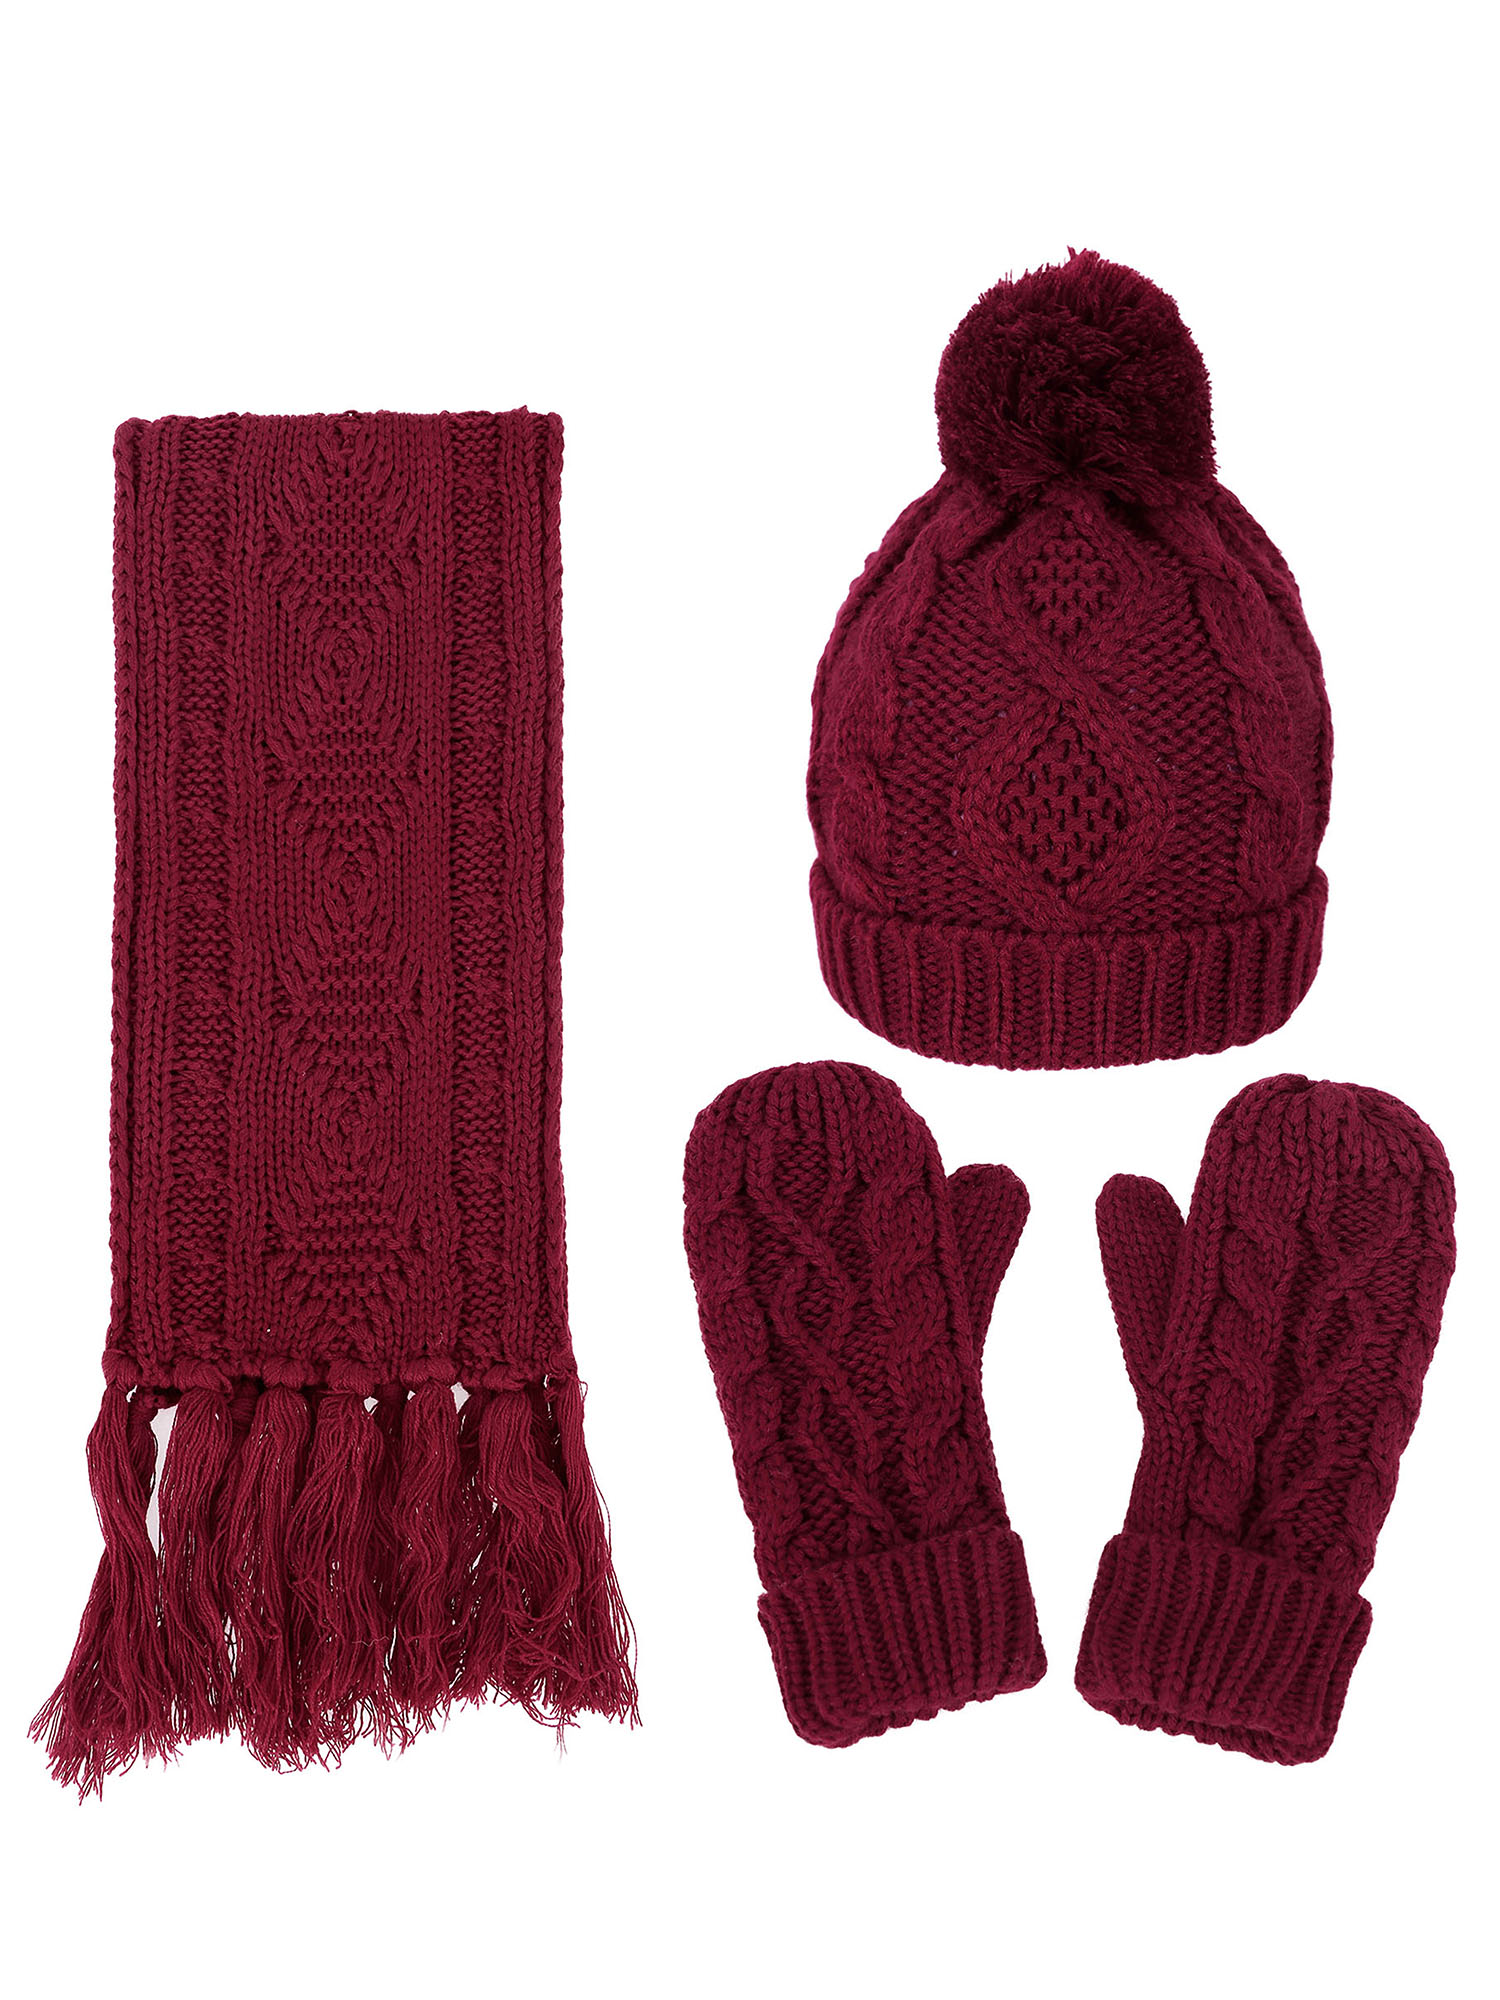 Burgundy and Gray Beanie Hat and Scarf Gift Set